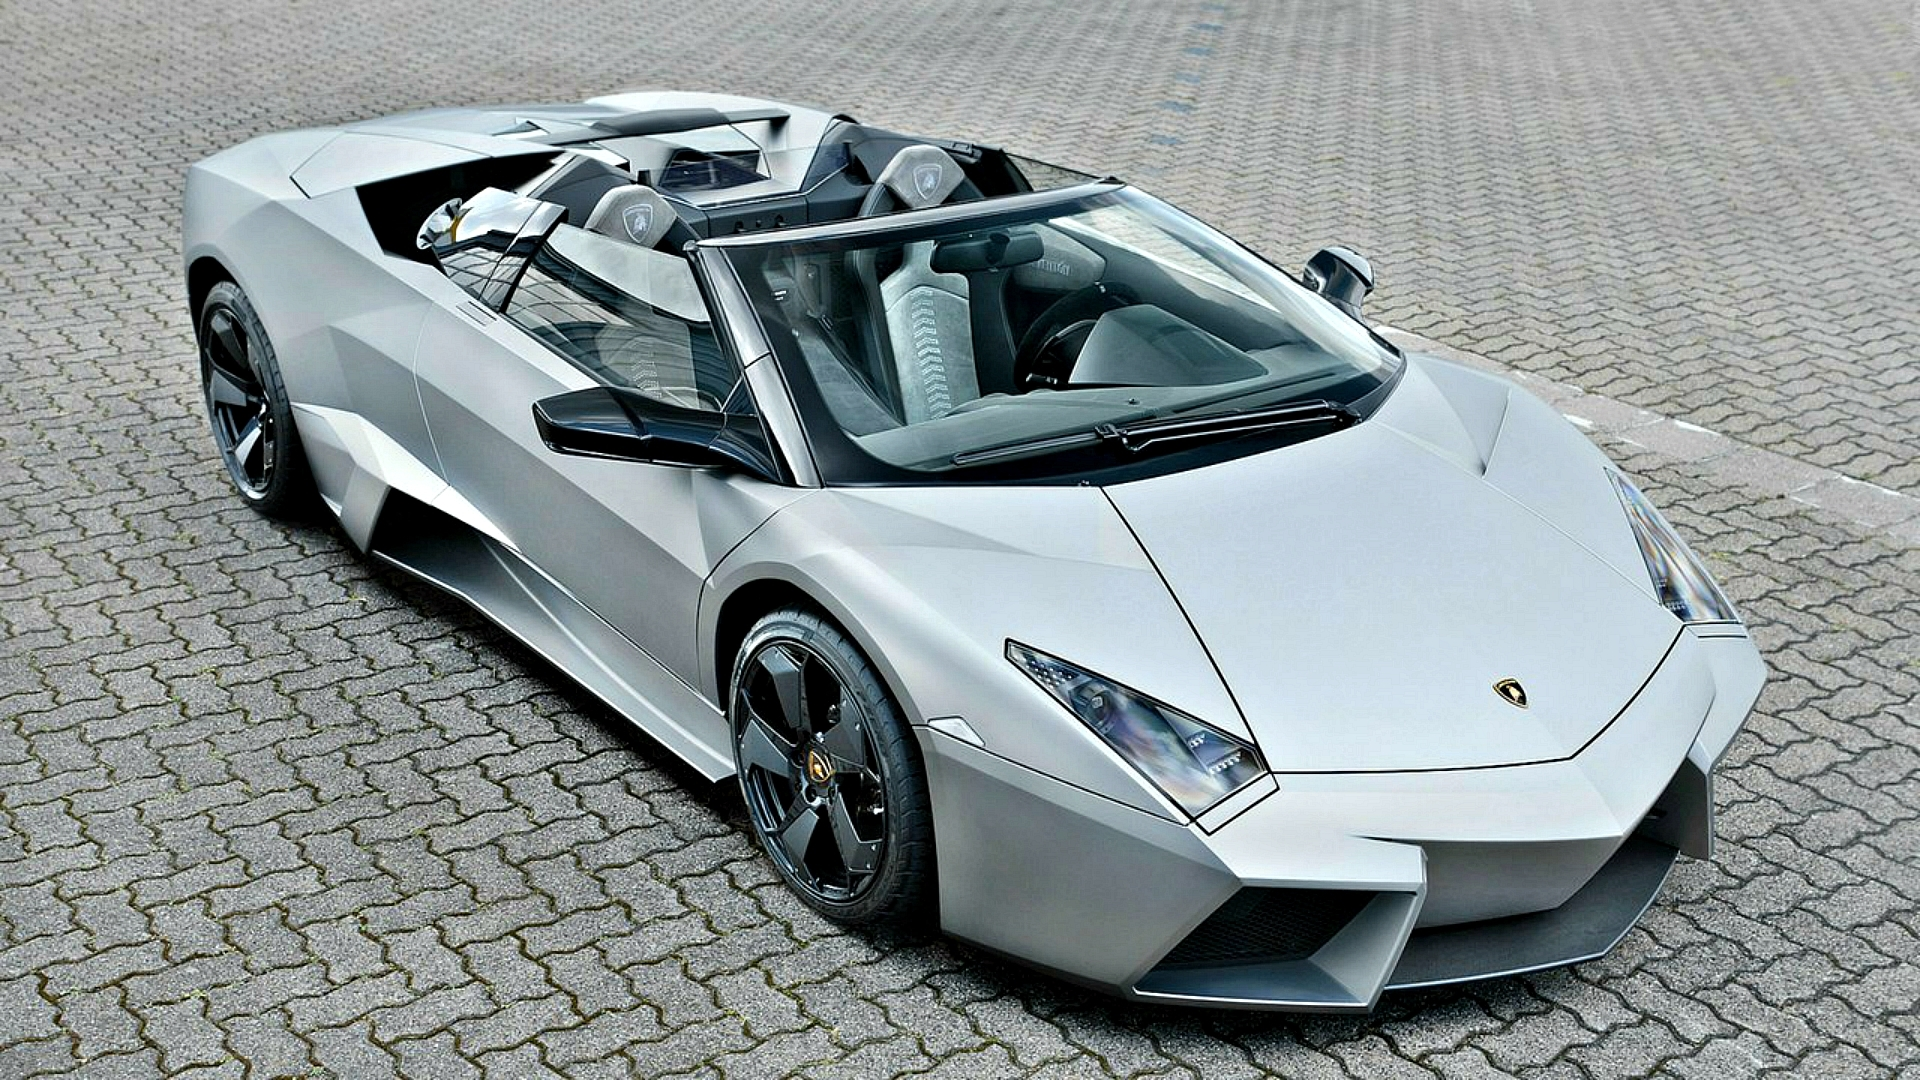 lamborghini reventon roadster wallpaper wallpapersafari. Black Bedroom Furniture Sets. Home Design Ideas